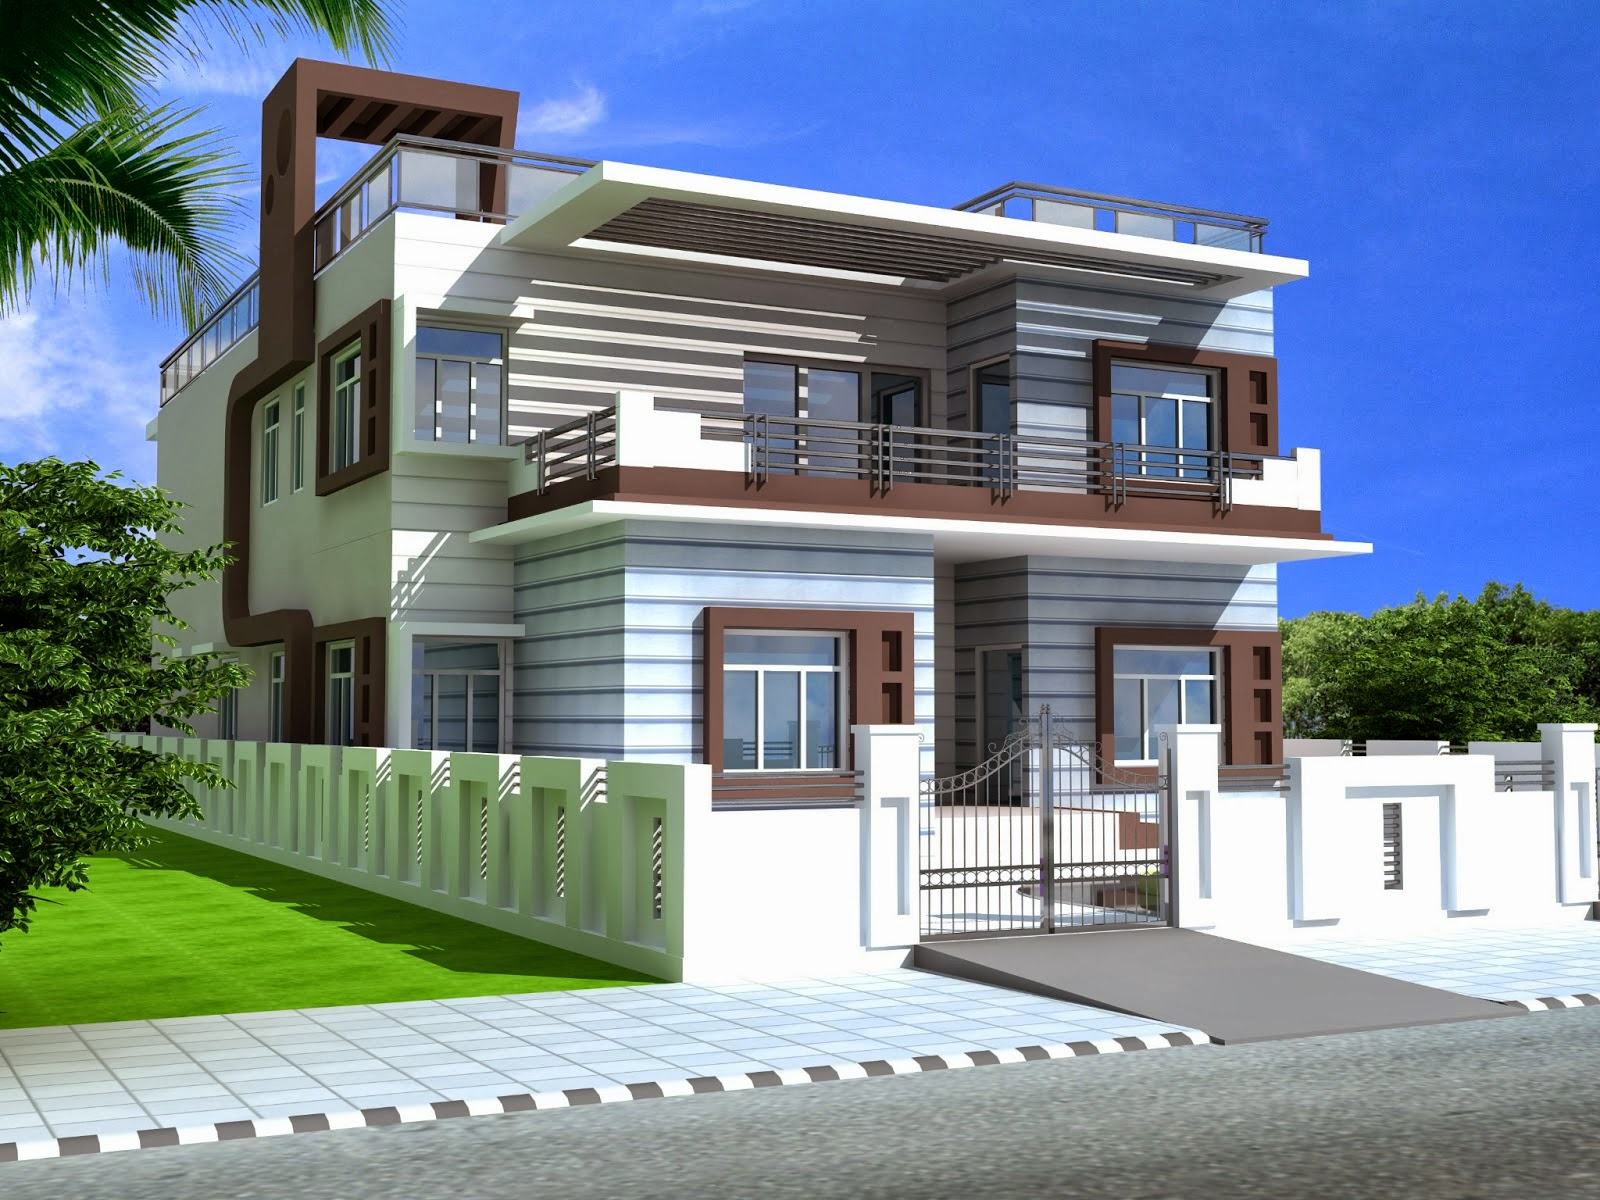 Foundation dezin decor duplex homes 3ds max work for Duplex 2